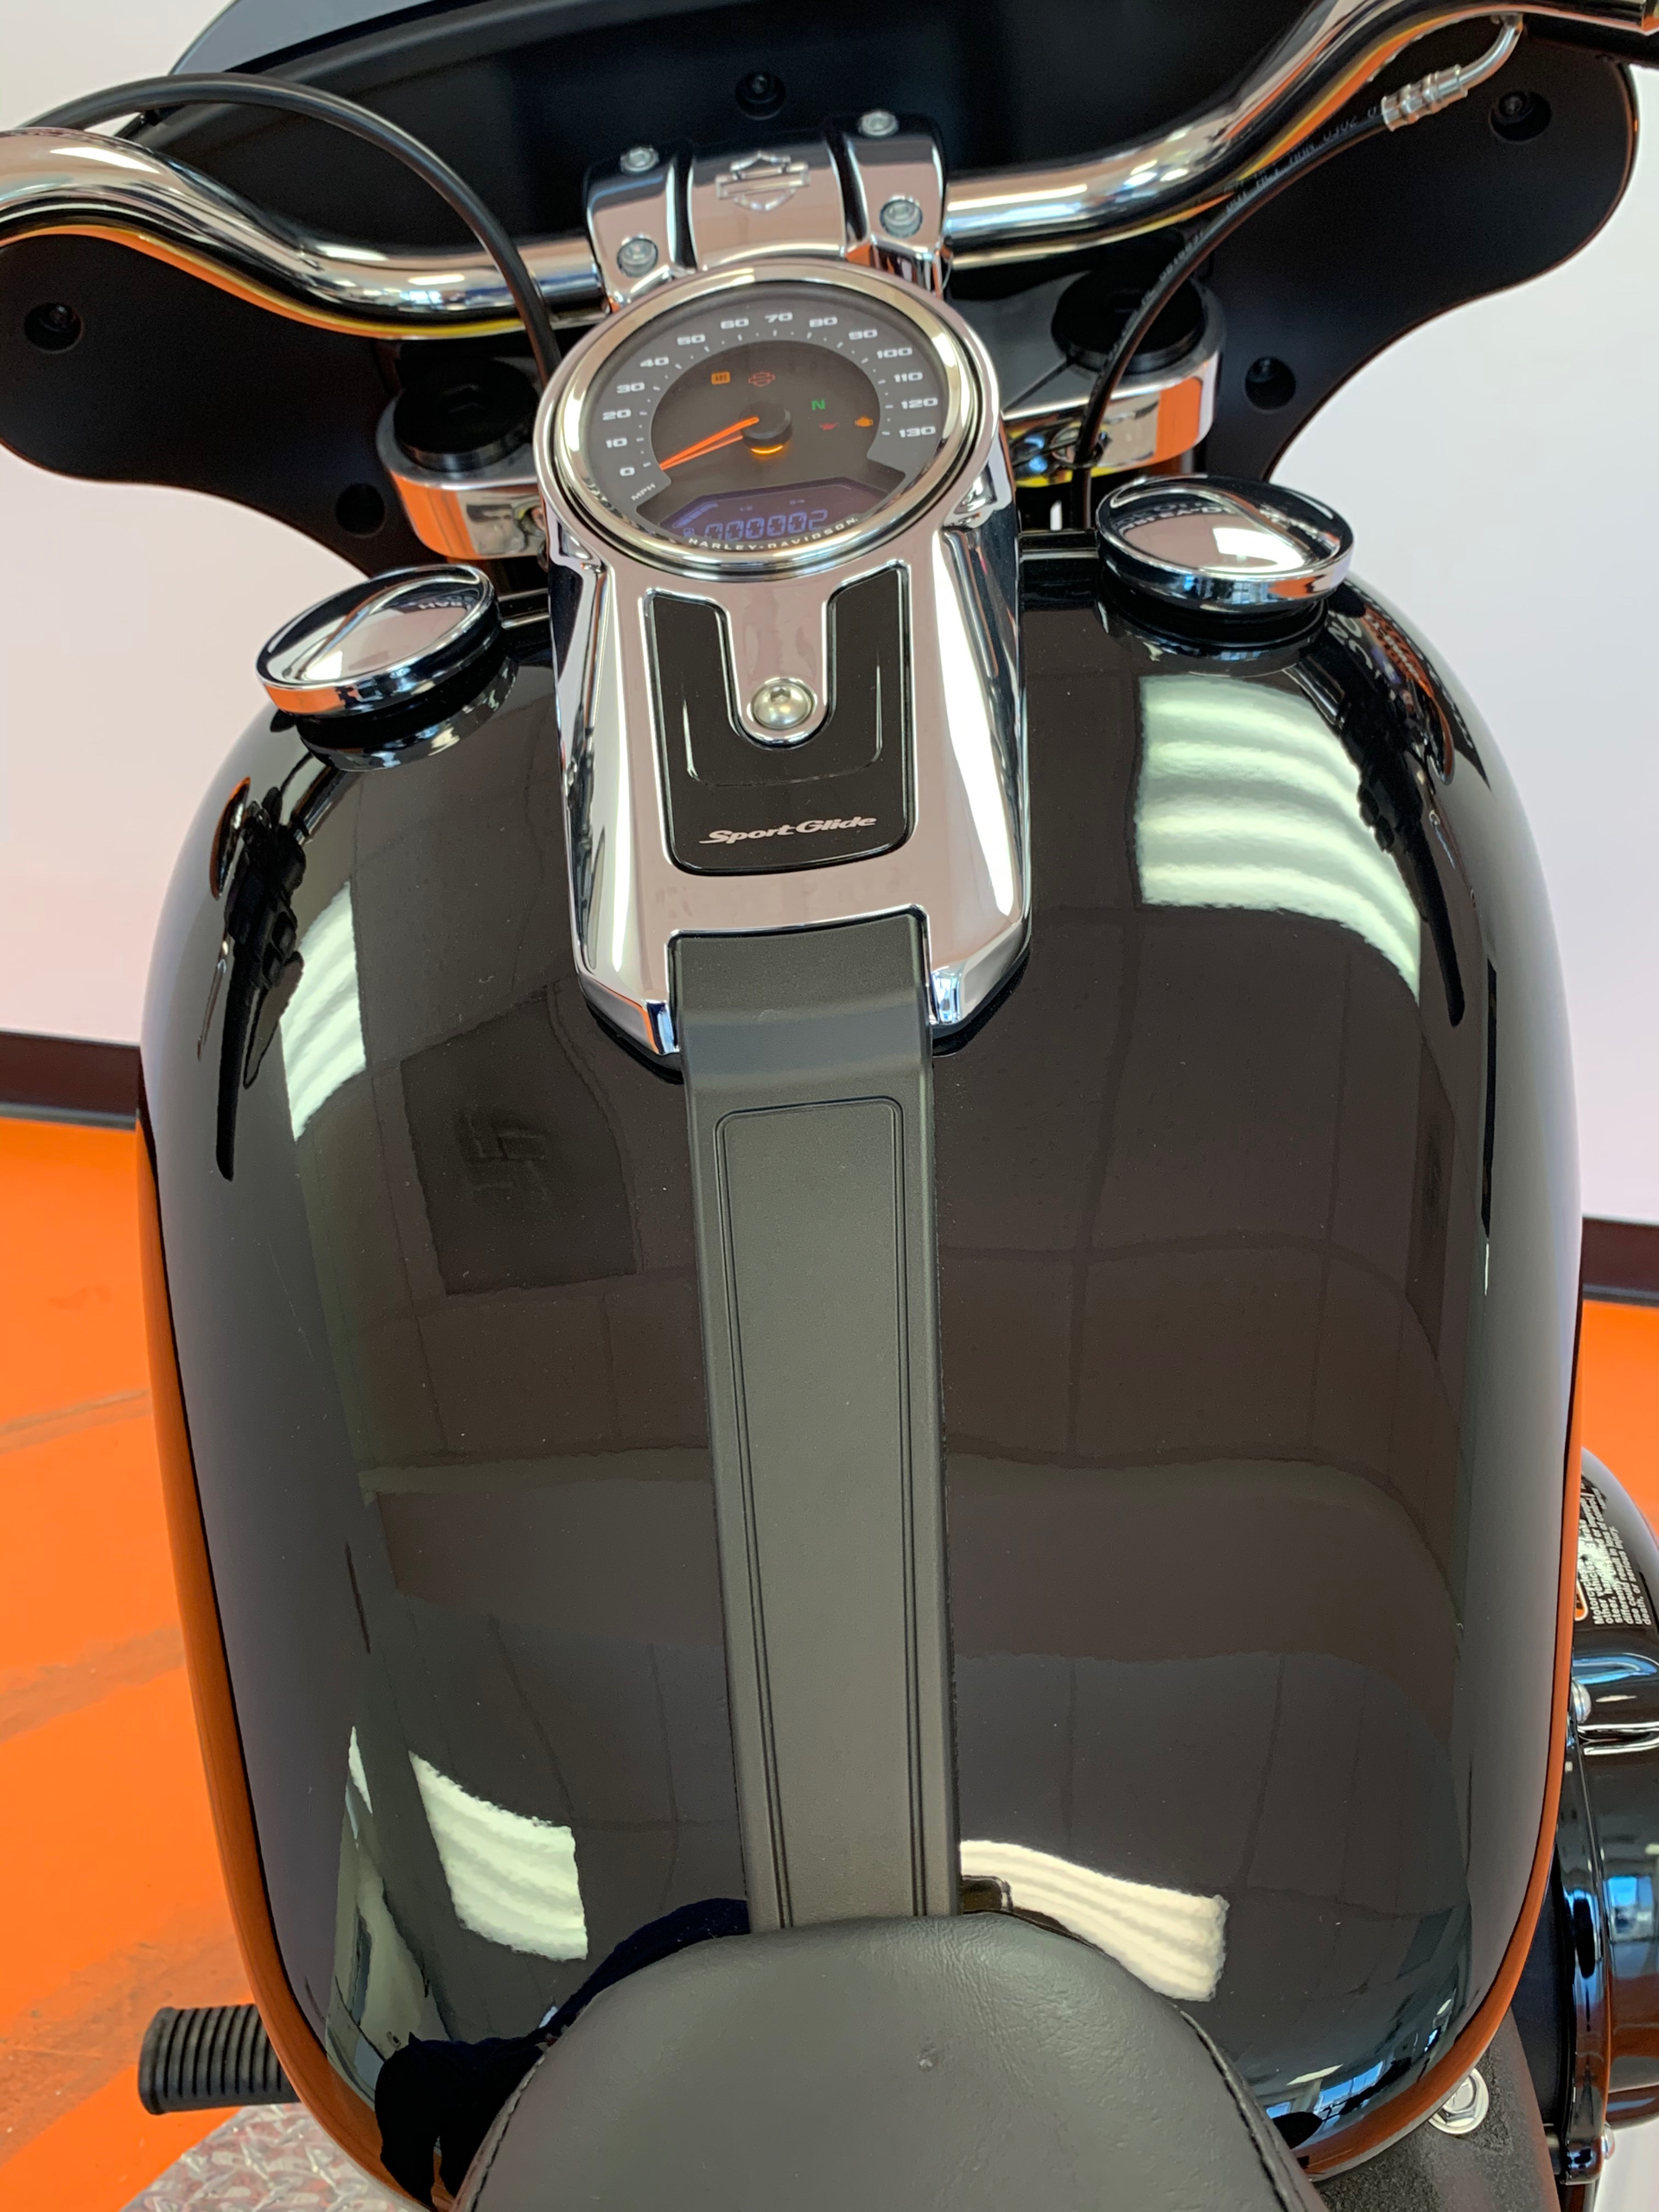 2021 Harley-Davidson Sport Glide in Dumfries, Virginia - Photo 20